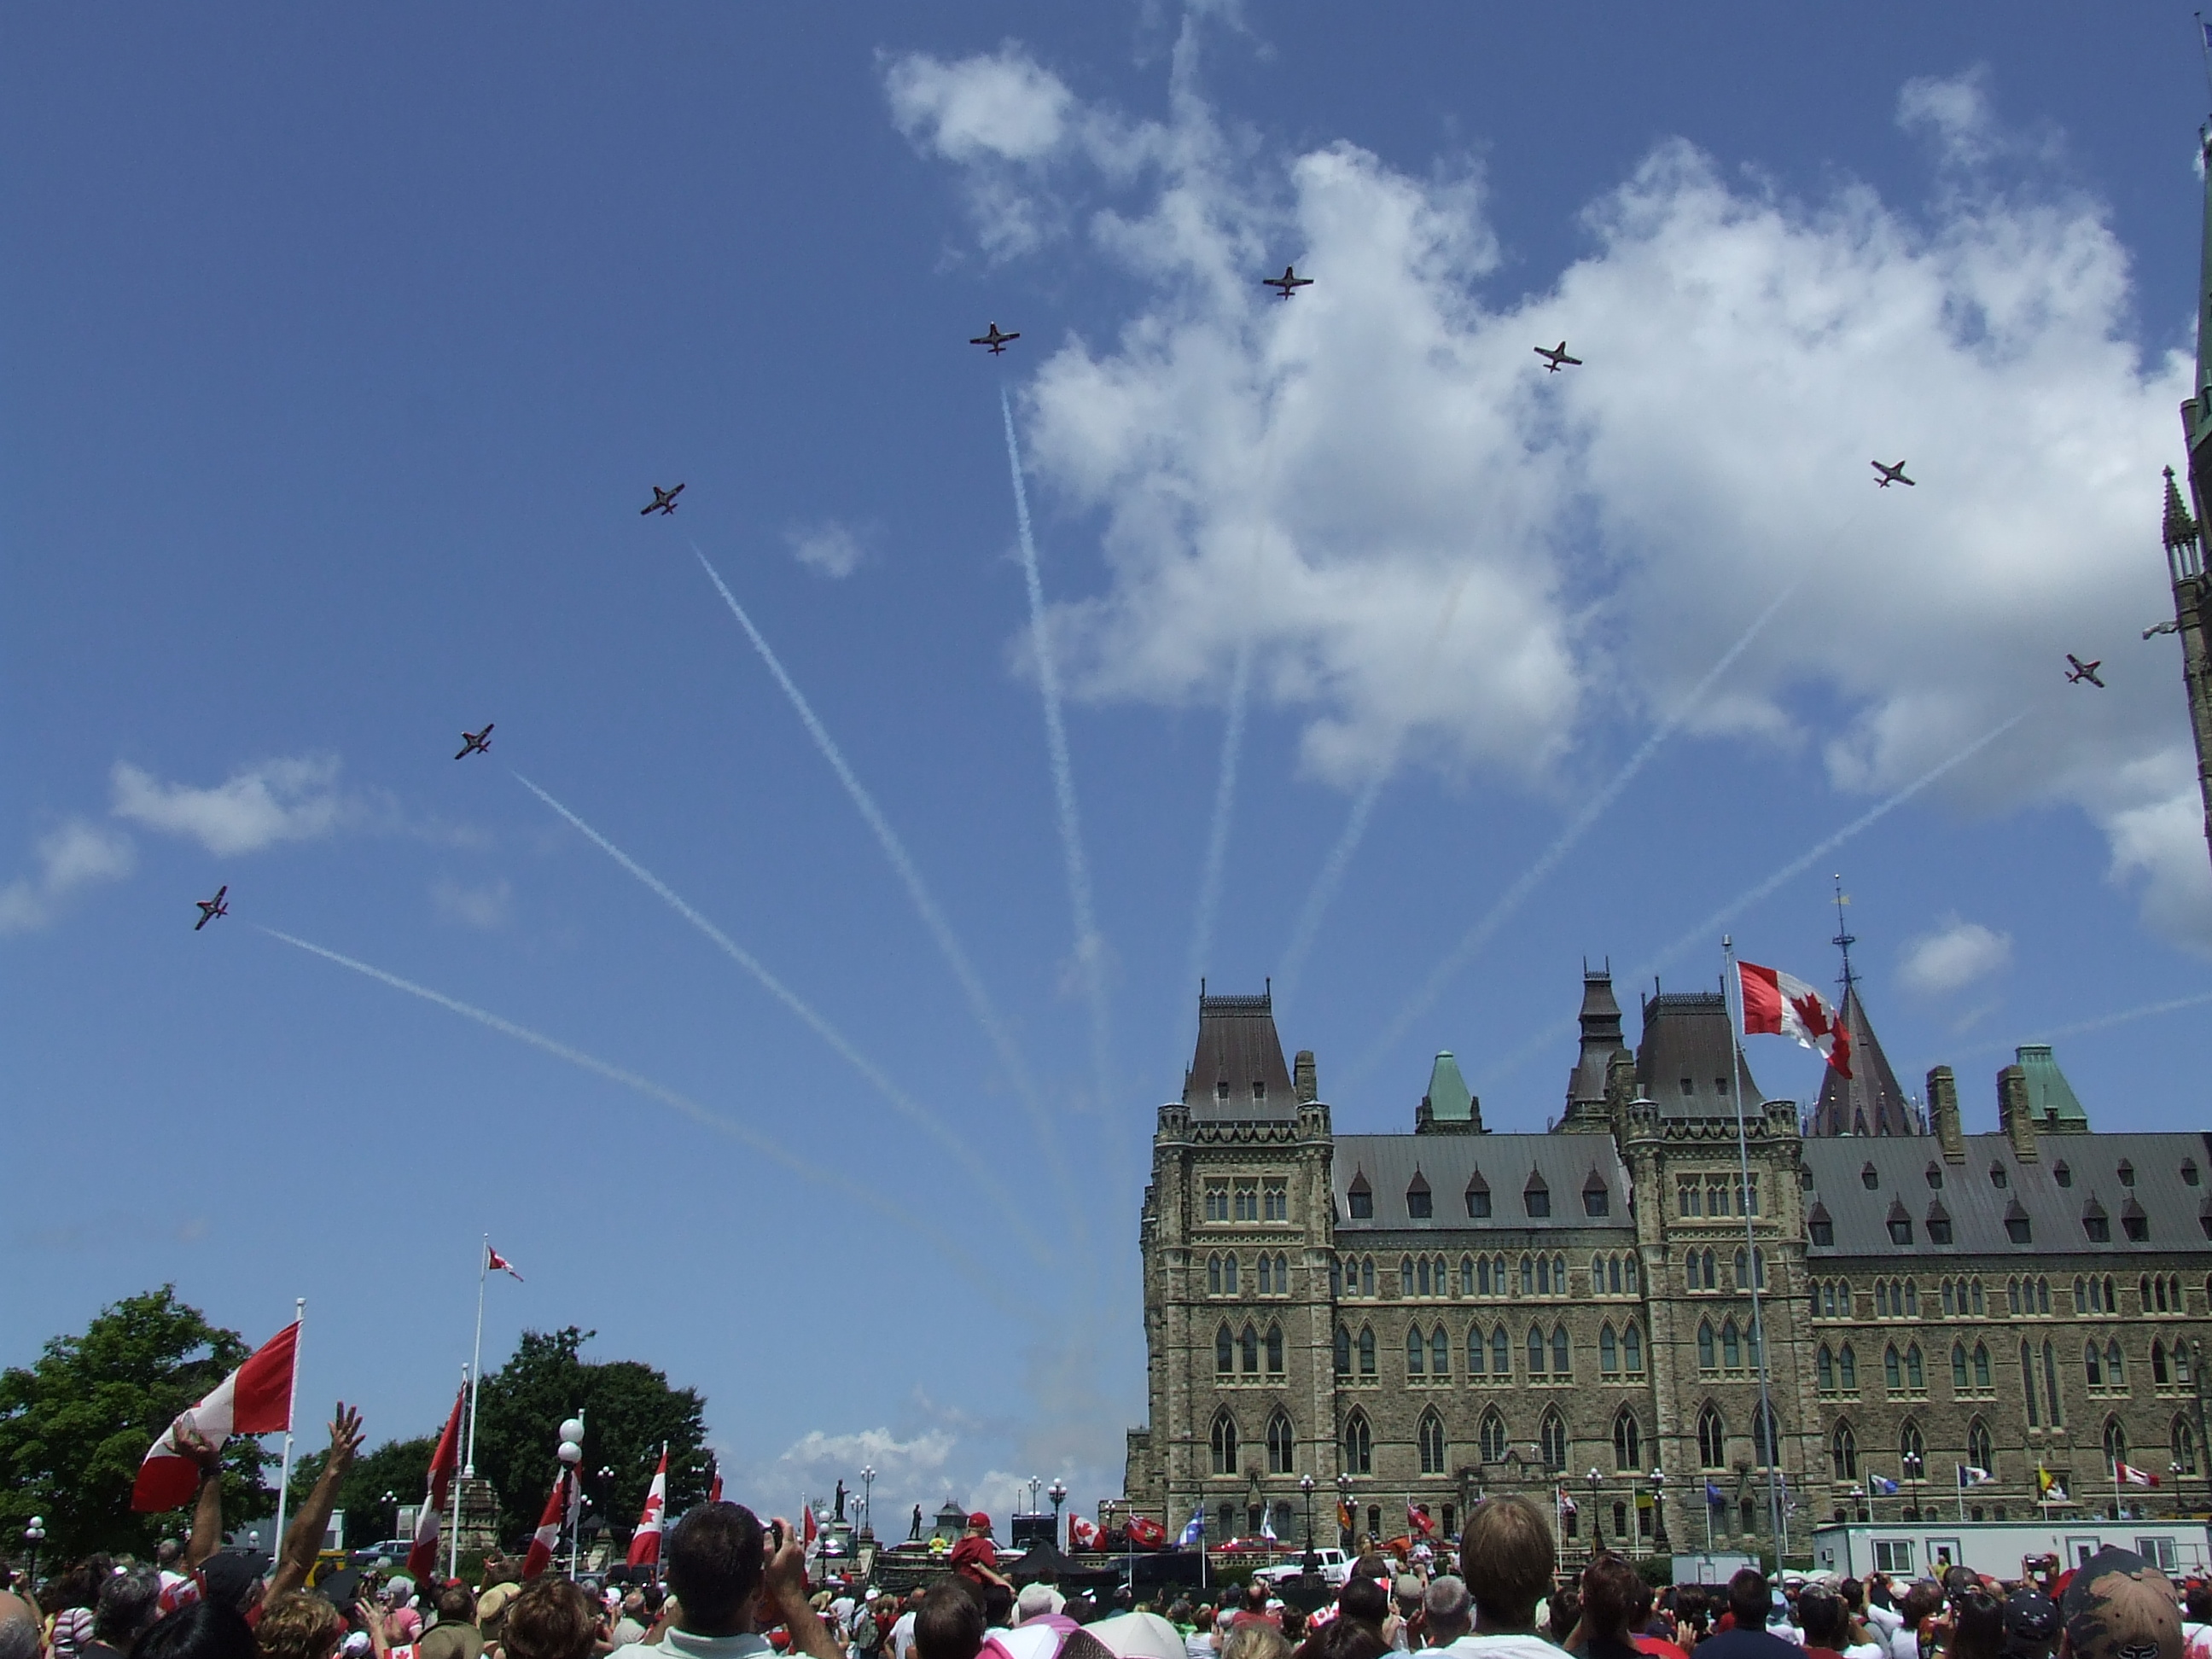 https://i0.wp.com/upload.wikimedia.org/wikipedia/commons/b/bb/Canada_Day_2008_Snowbirds_over_Parliament.jpg